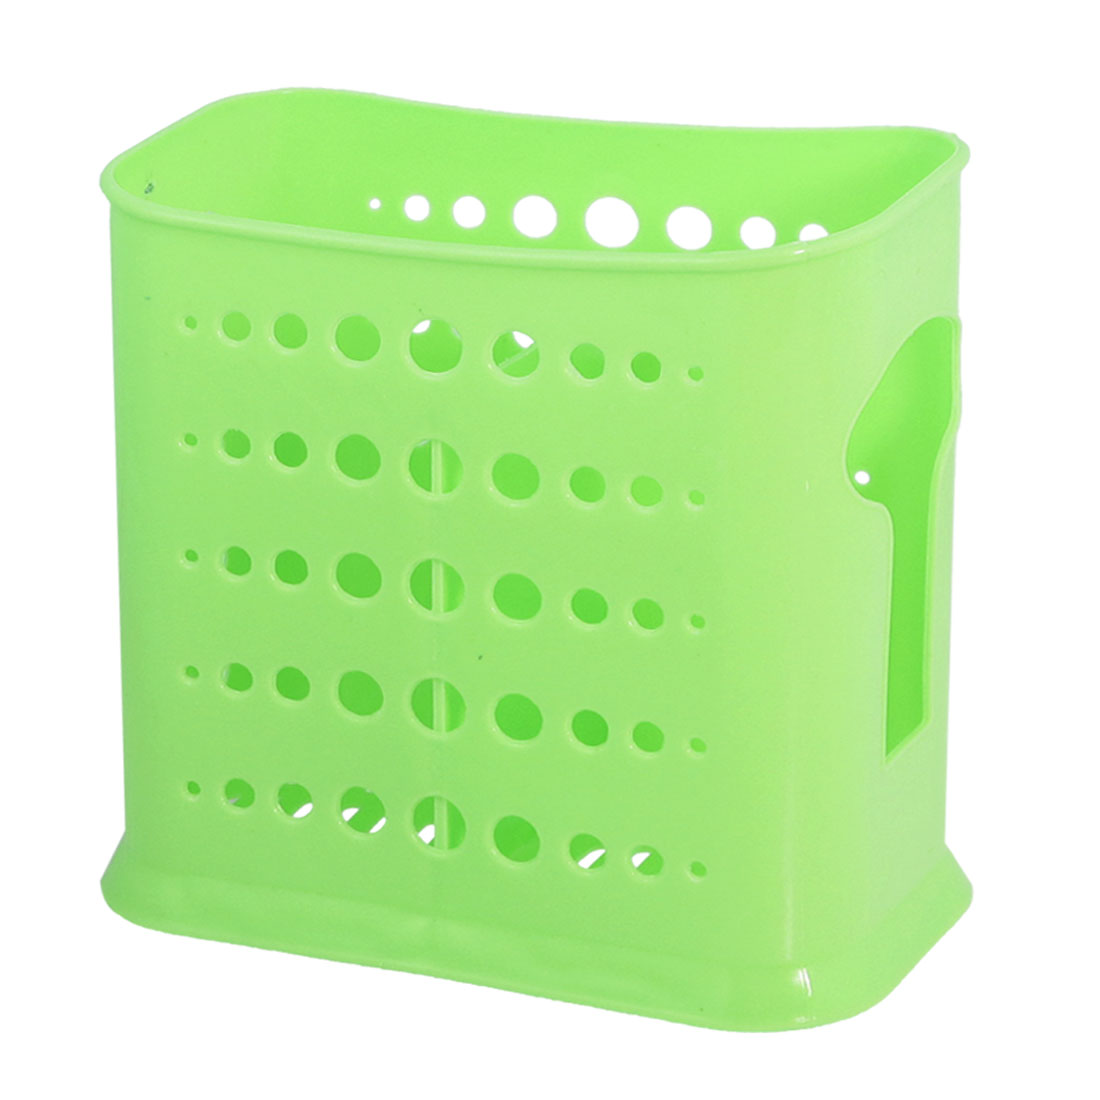 Hollow Out Round Perforating 2 Compartments Chopsticks Fork Cage Holder Green - image 1 of 1